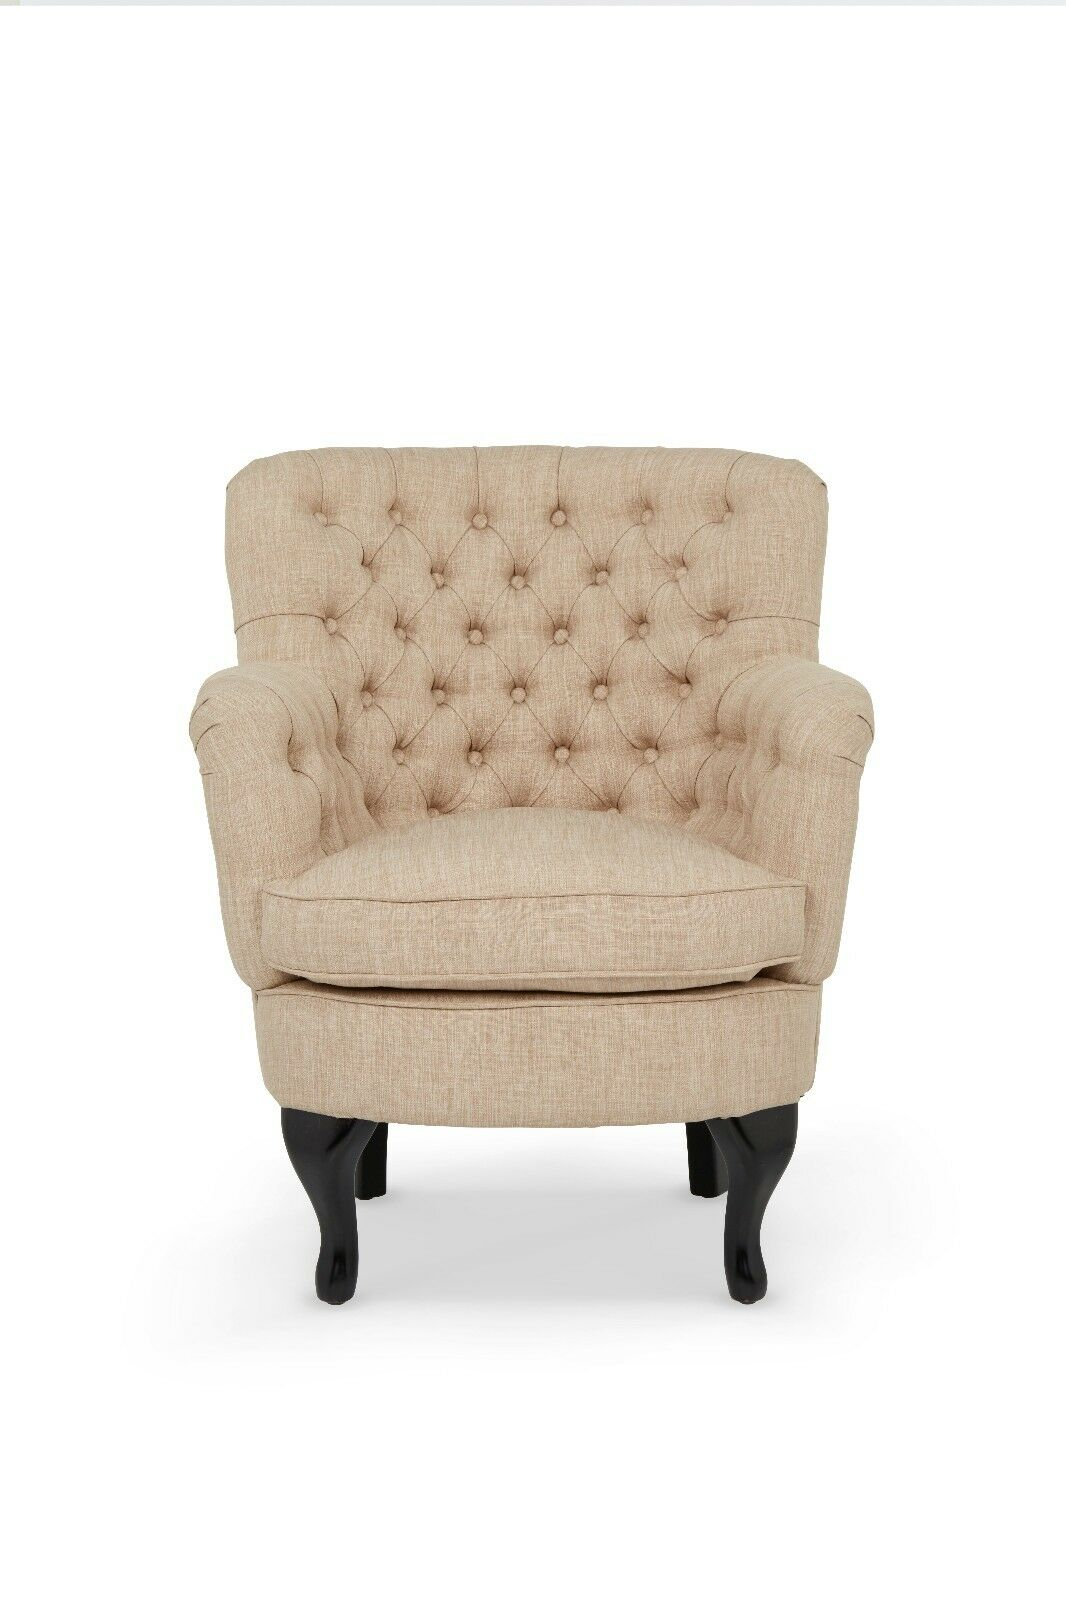 Oman Chesterfield Armchair Occasional Chair in Grey or  : 57 from www.ebay.co.uk size 1066 x 1600 jpeg 112kB